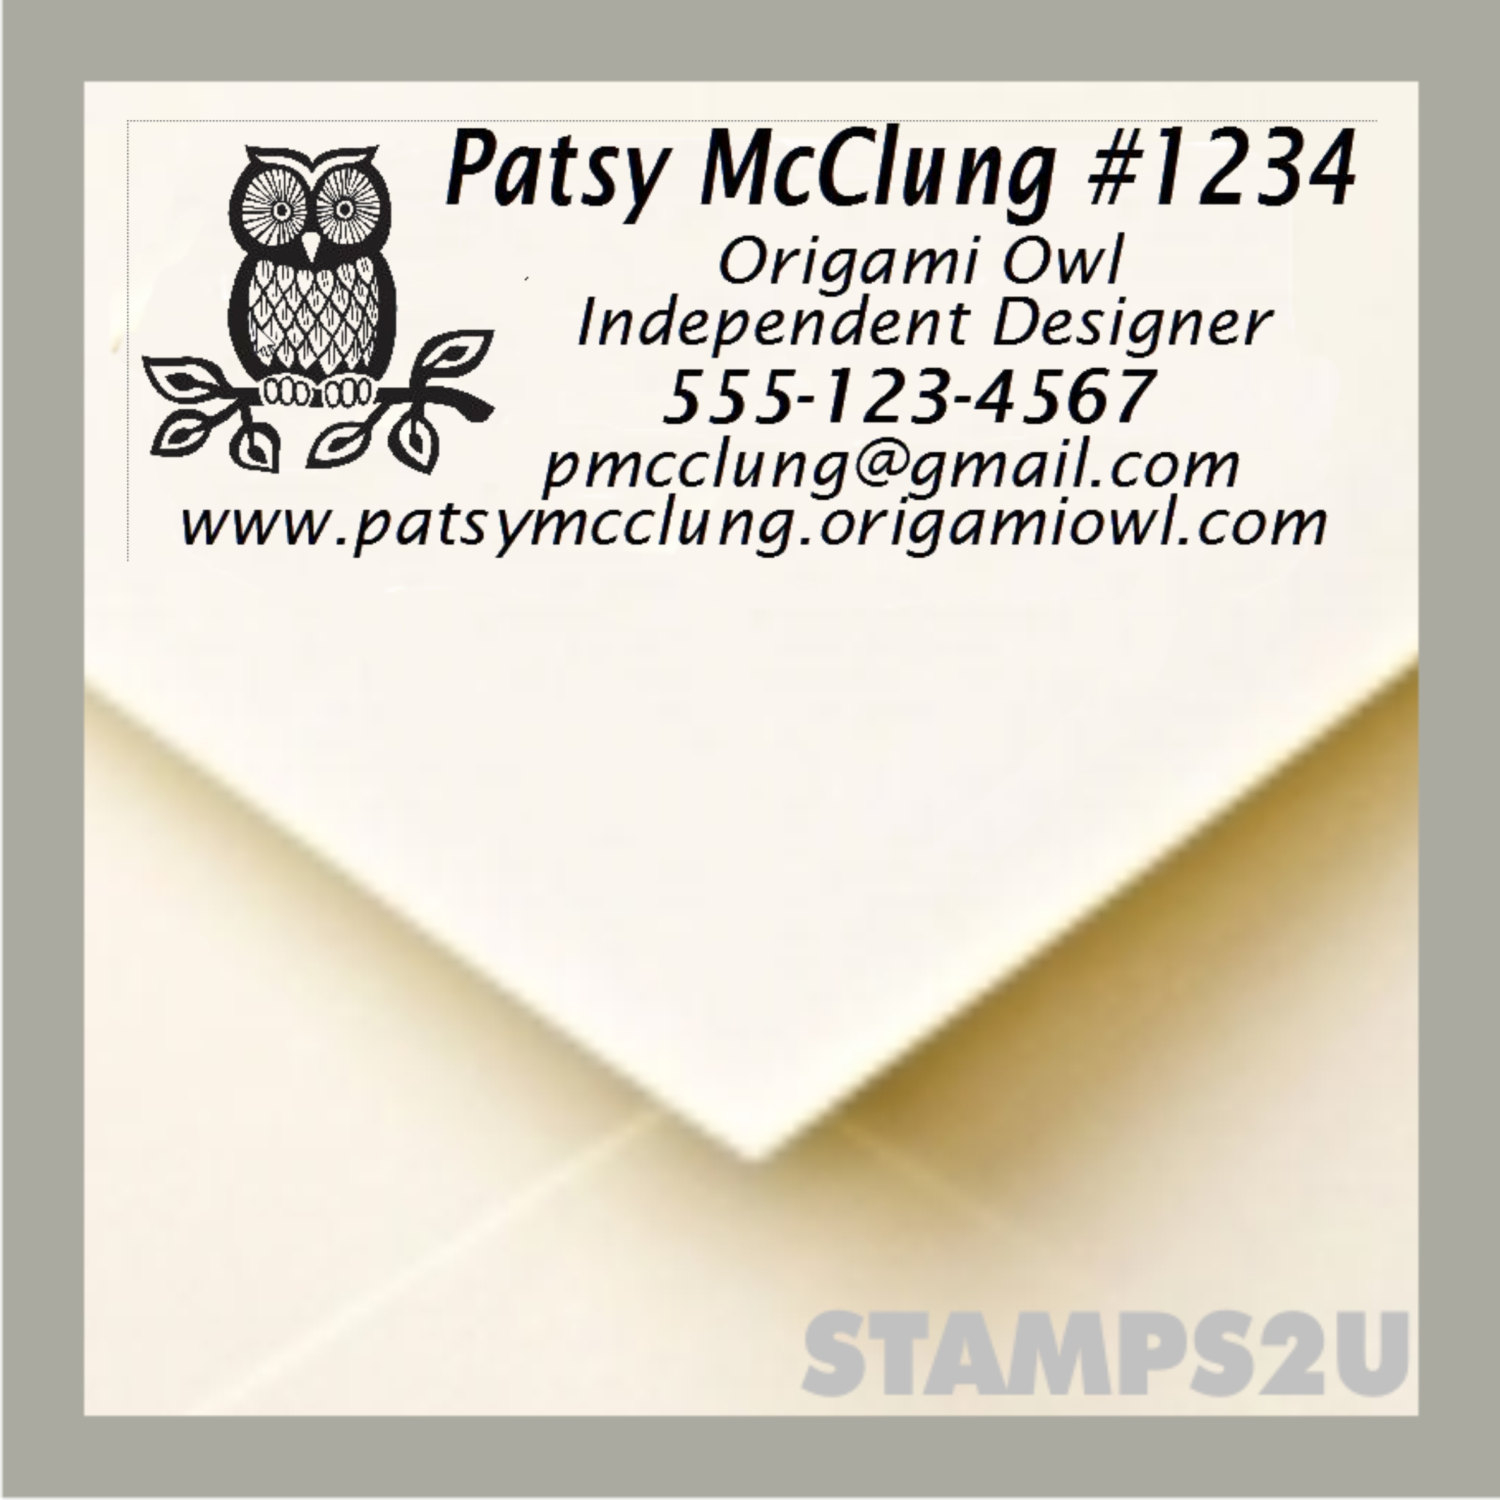 Origami Owl Designer Login Origami Owl Designer Pre Inked Stamp To Use For Your Invoices And Catalogs 2770 No Separate Ink Pad Stop Using Labels